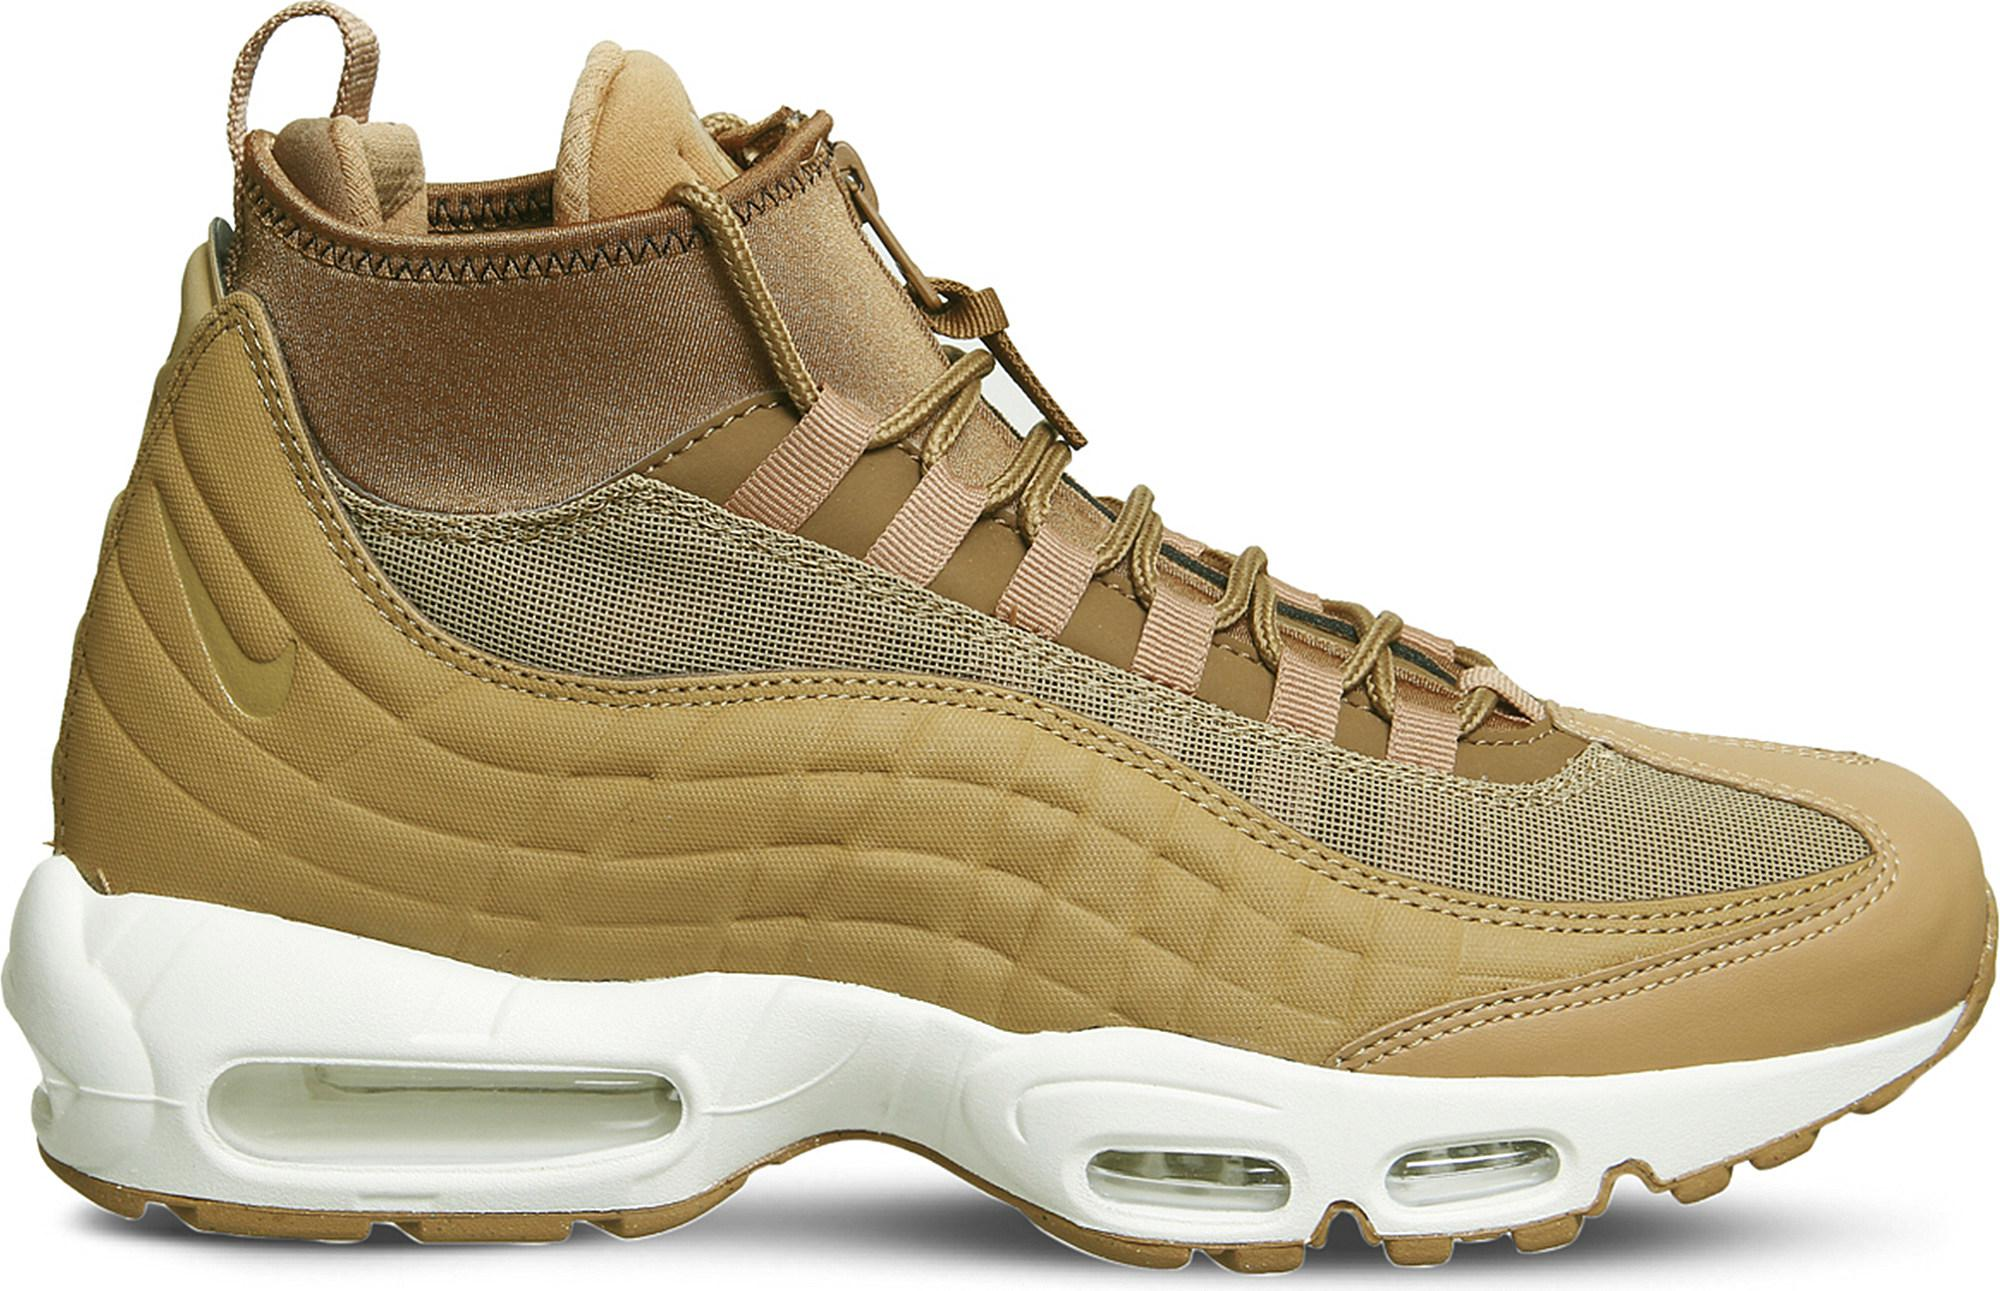 Nike. Men's Air Max 95 Sneakerboot Leather And Fabric High-top Trainers